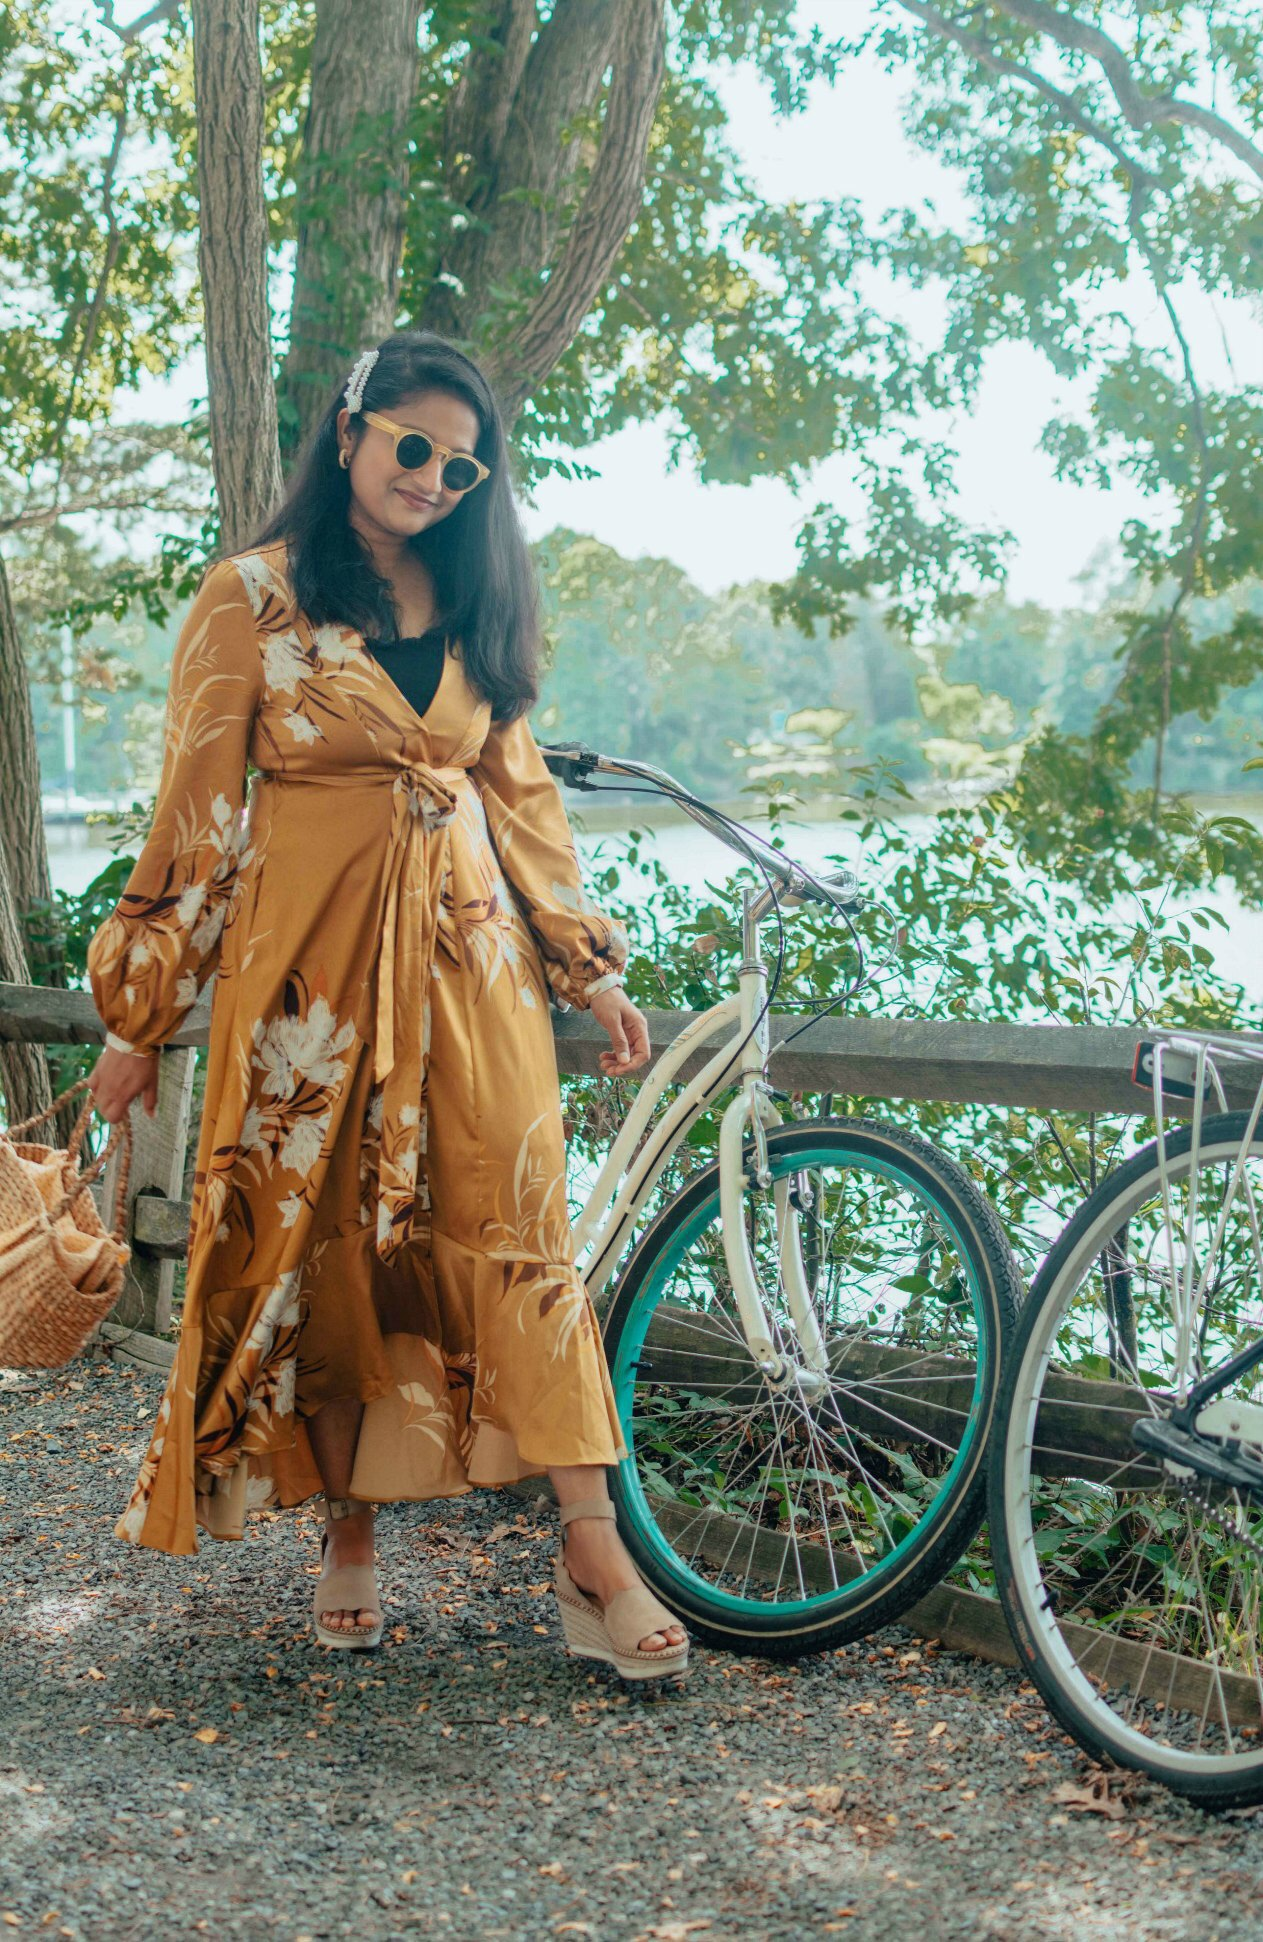 Express kimono dress styled for summer by top US modest fashion blog, Dreaming Loud: image of a woman wearing an Express floral kimono dress, Peekaboo Chic slip dress, Crow Vintage wedge espadrille sandals, BAUBLEBAR studded hoop earrings.